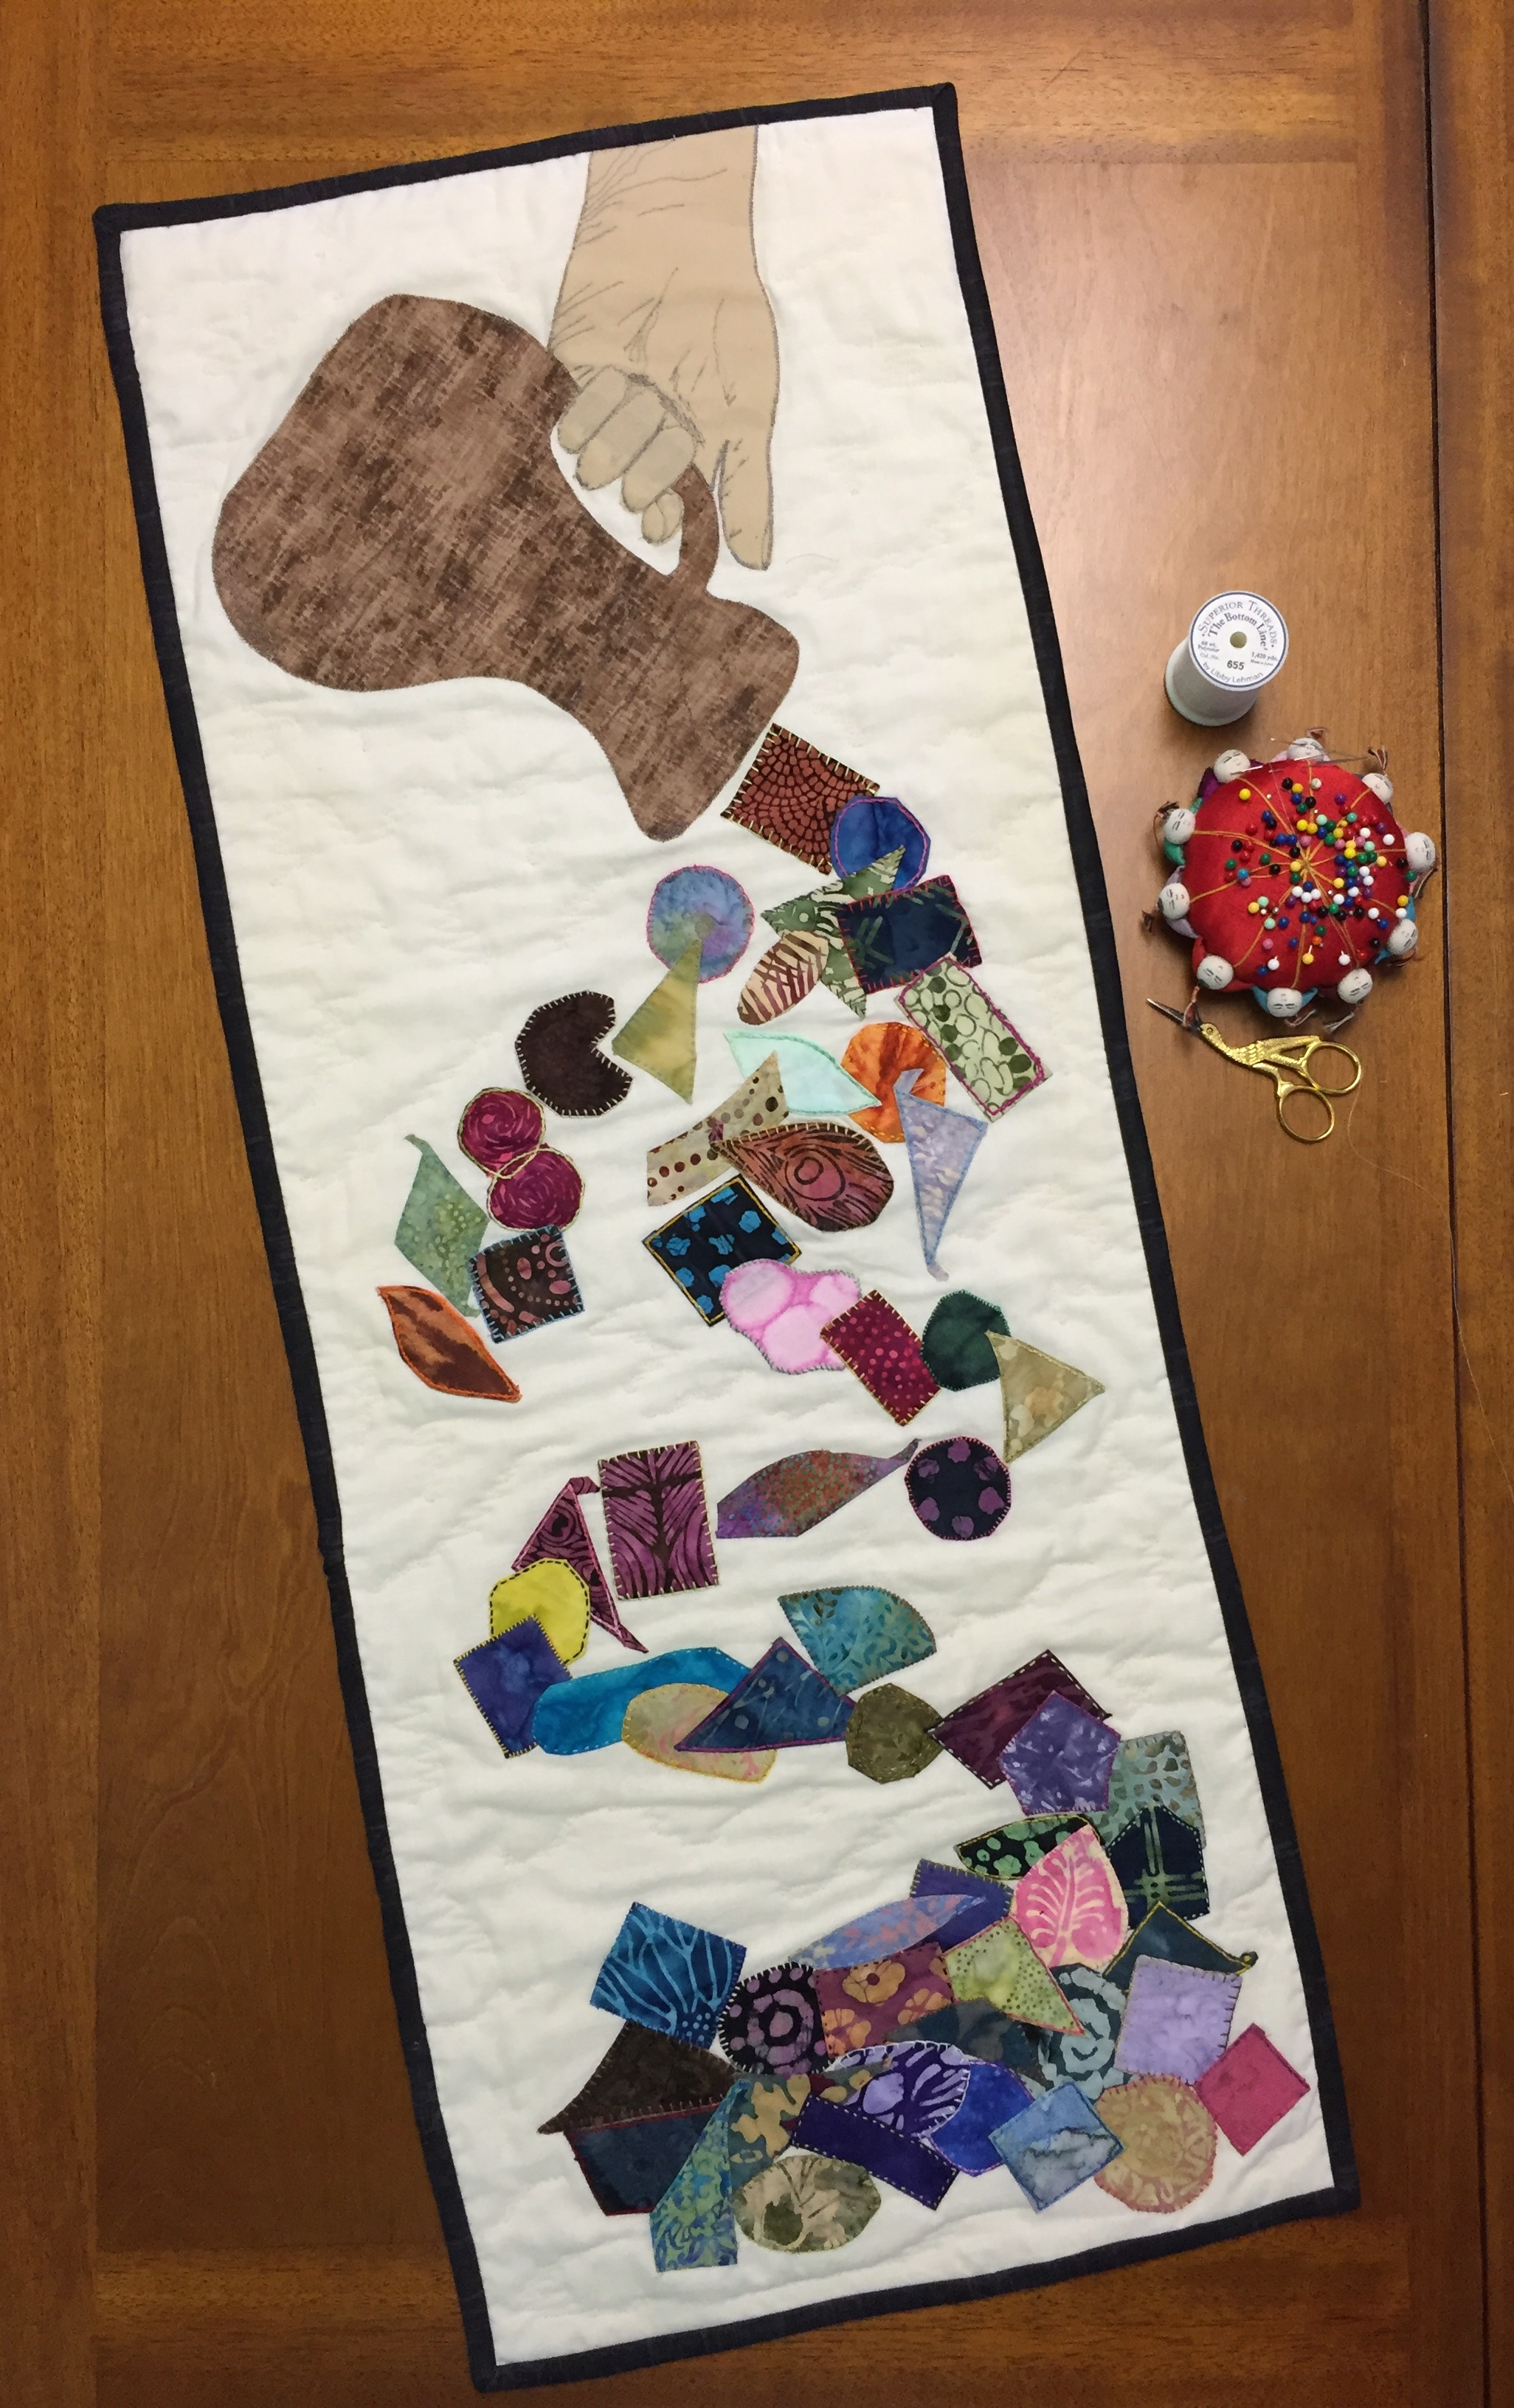 "Here is the completed Prayer quilt project. There are many names for prayer projects. Visual Faith coach Belinda Bost coined the term-""Praying the Stitches."" Nancy calls her project- ""Praying Through the Stitches."" Either name seems pretty appropriate for this prayer project."